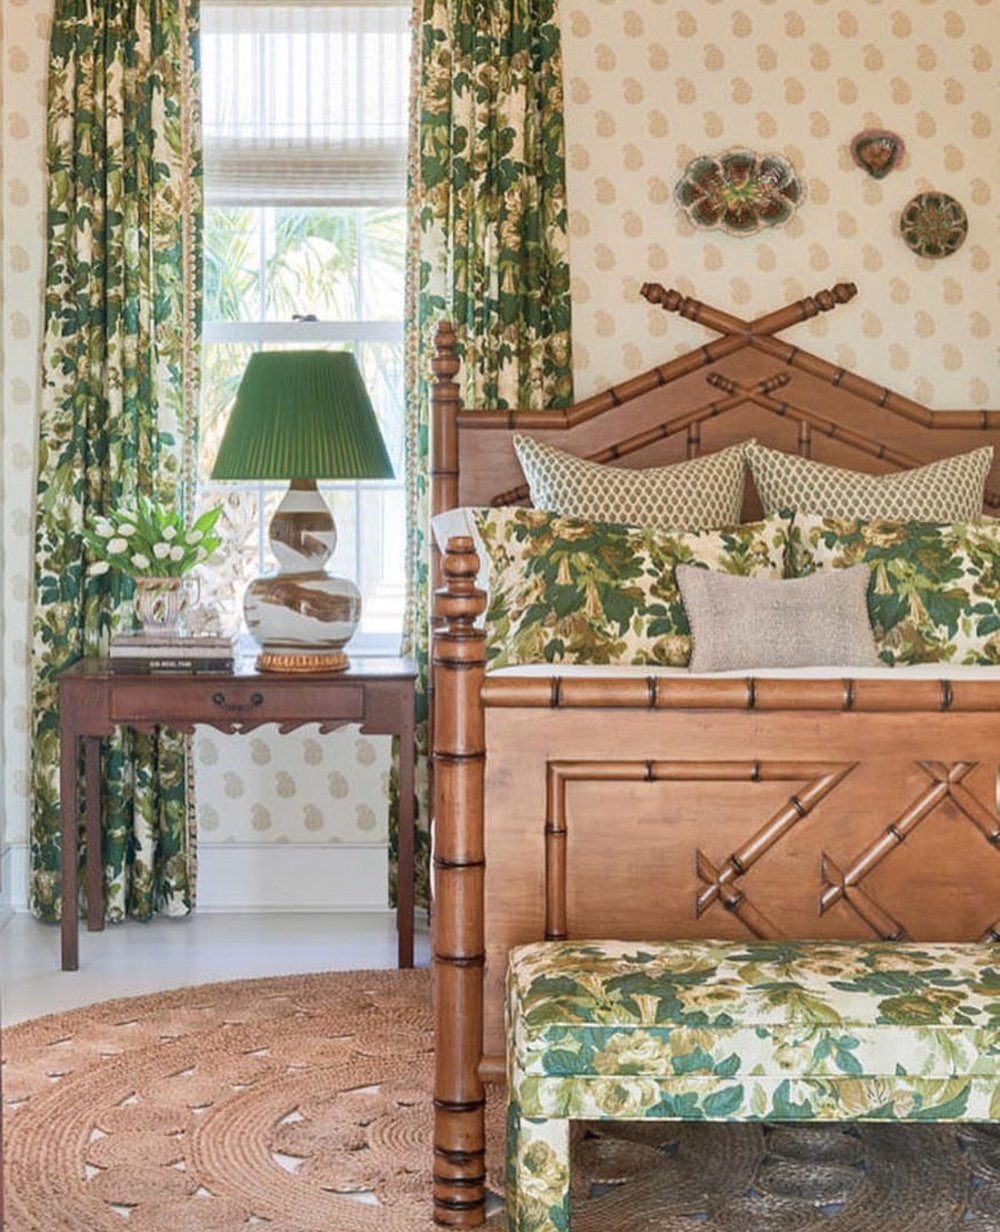 Coastal bedroom featuring the Faux Bamboo bed from Rooms & Gardens